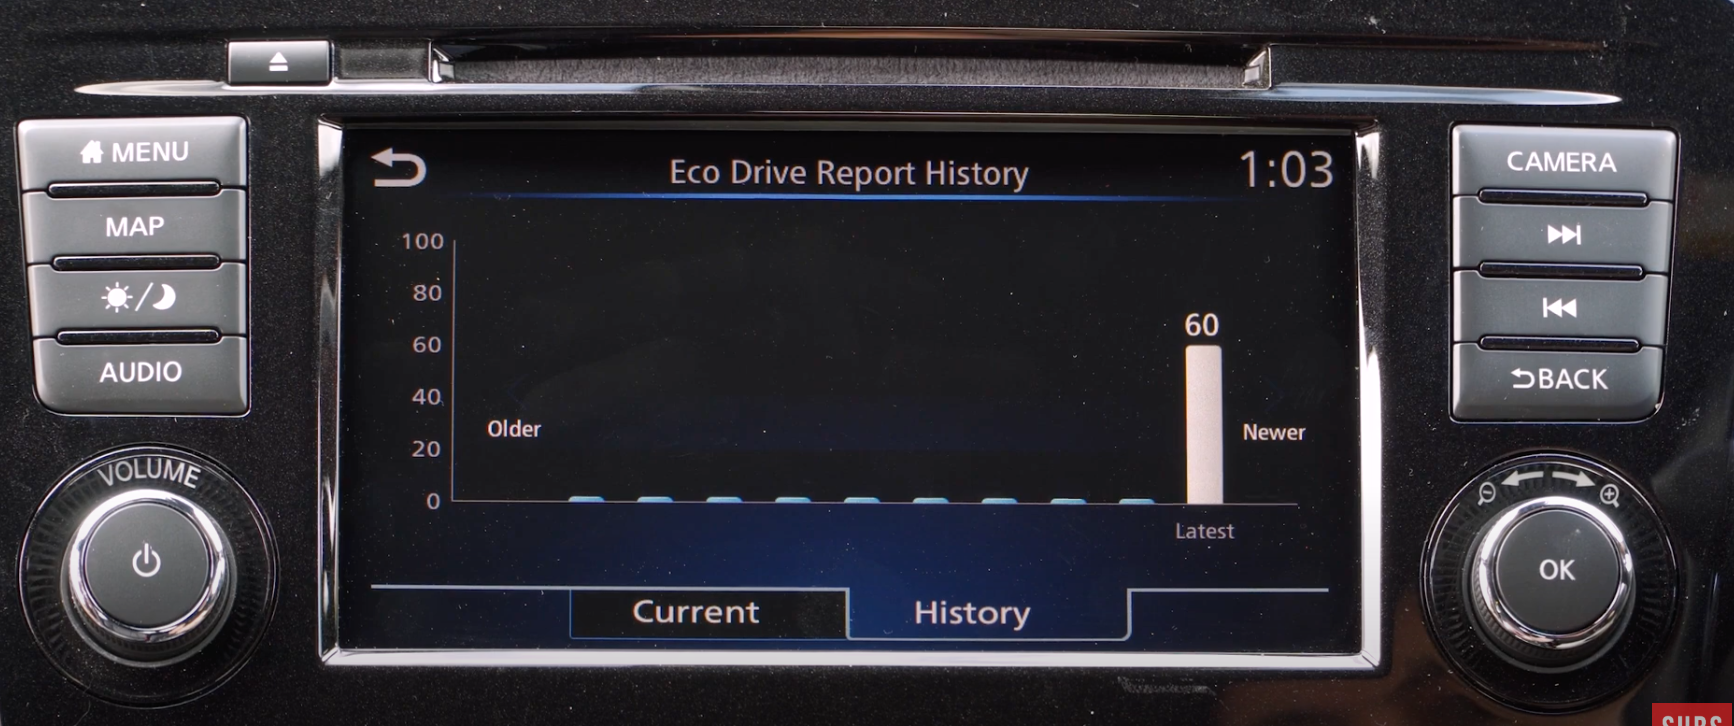 A bar chart showing the eco drive report history of a car